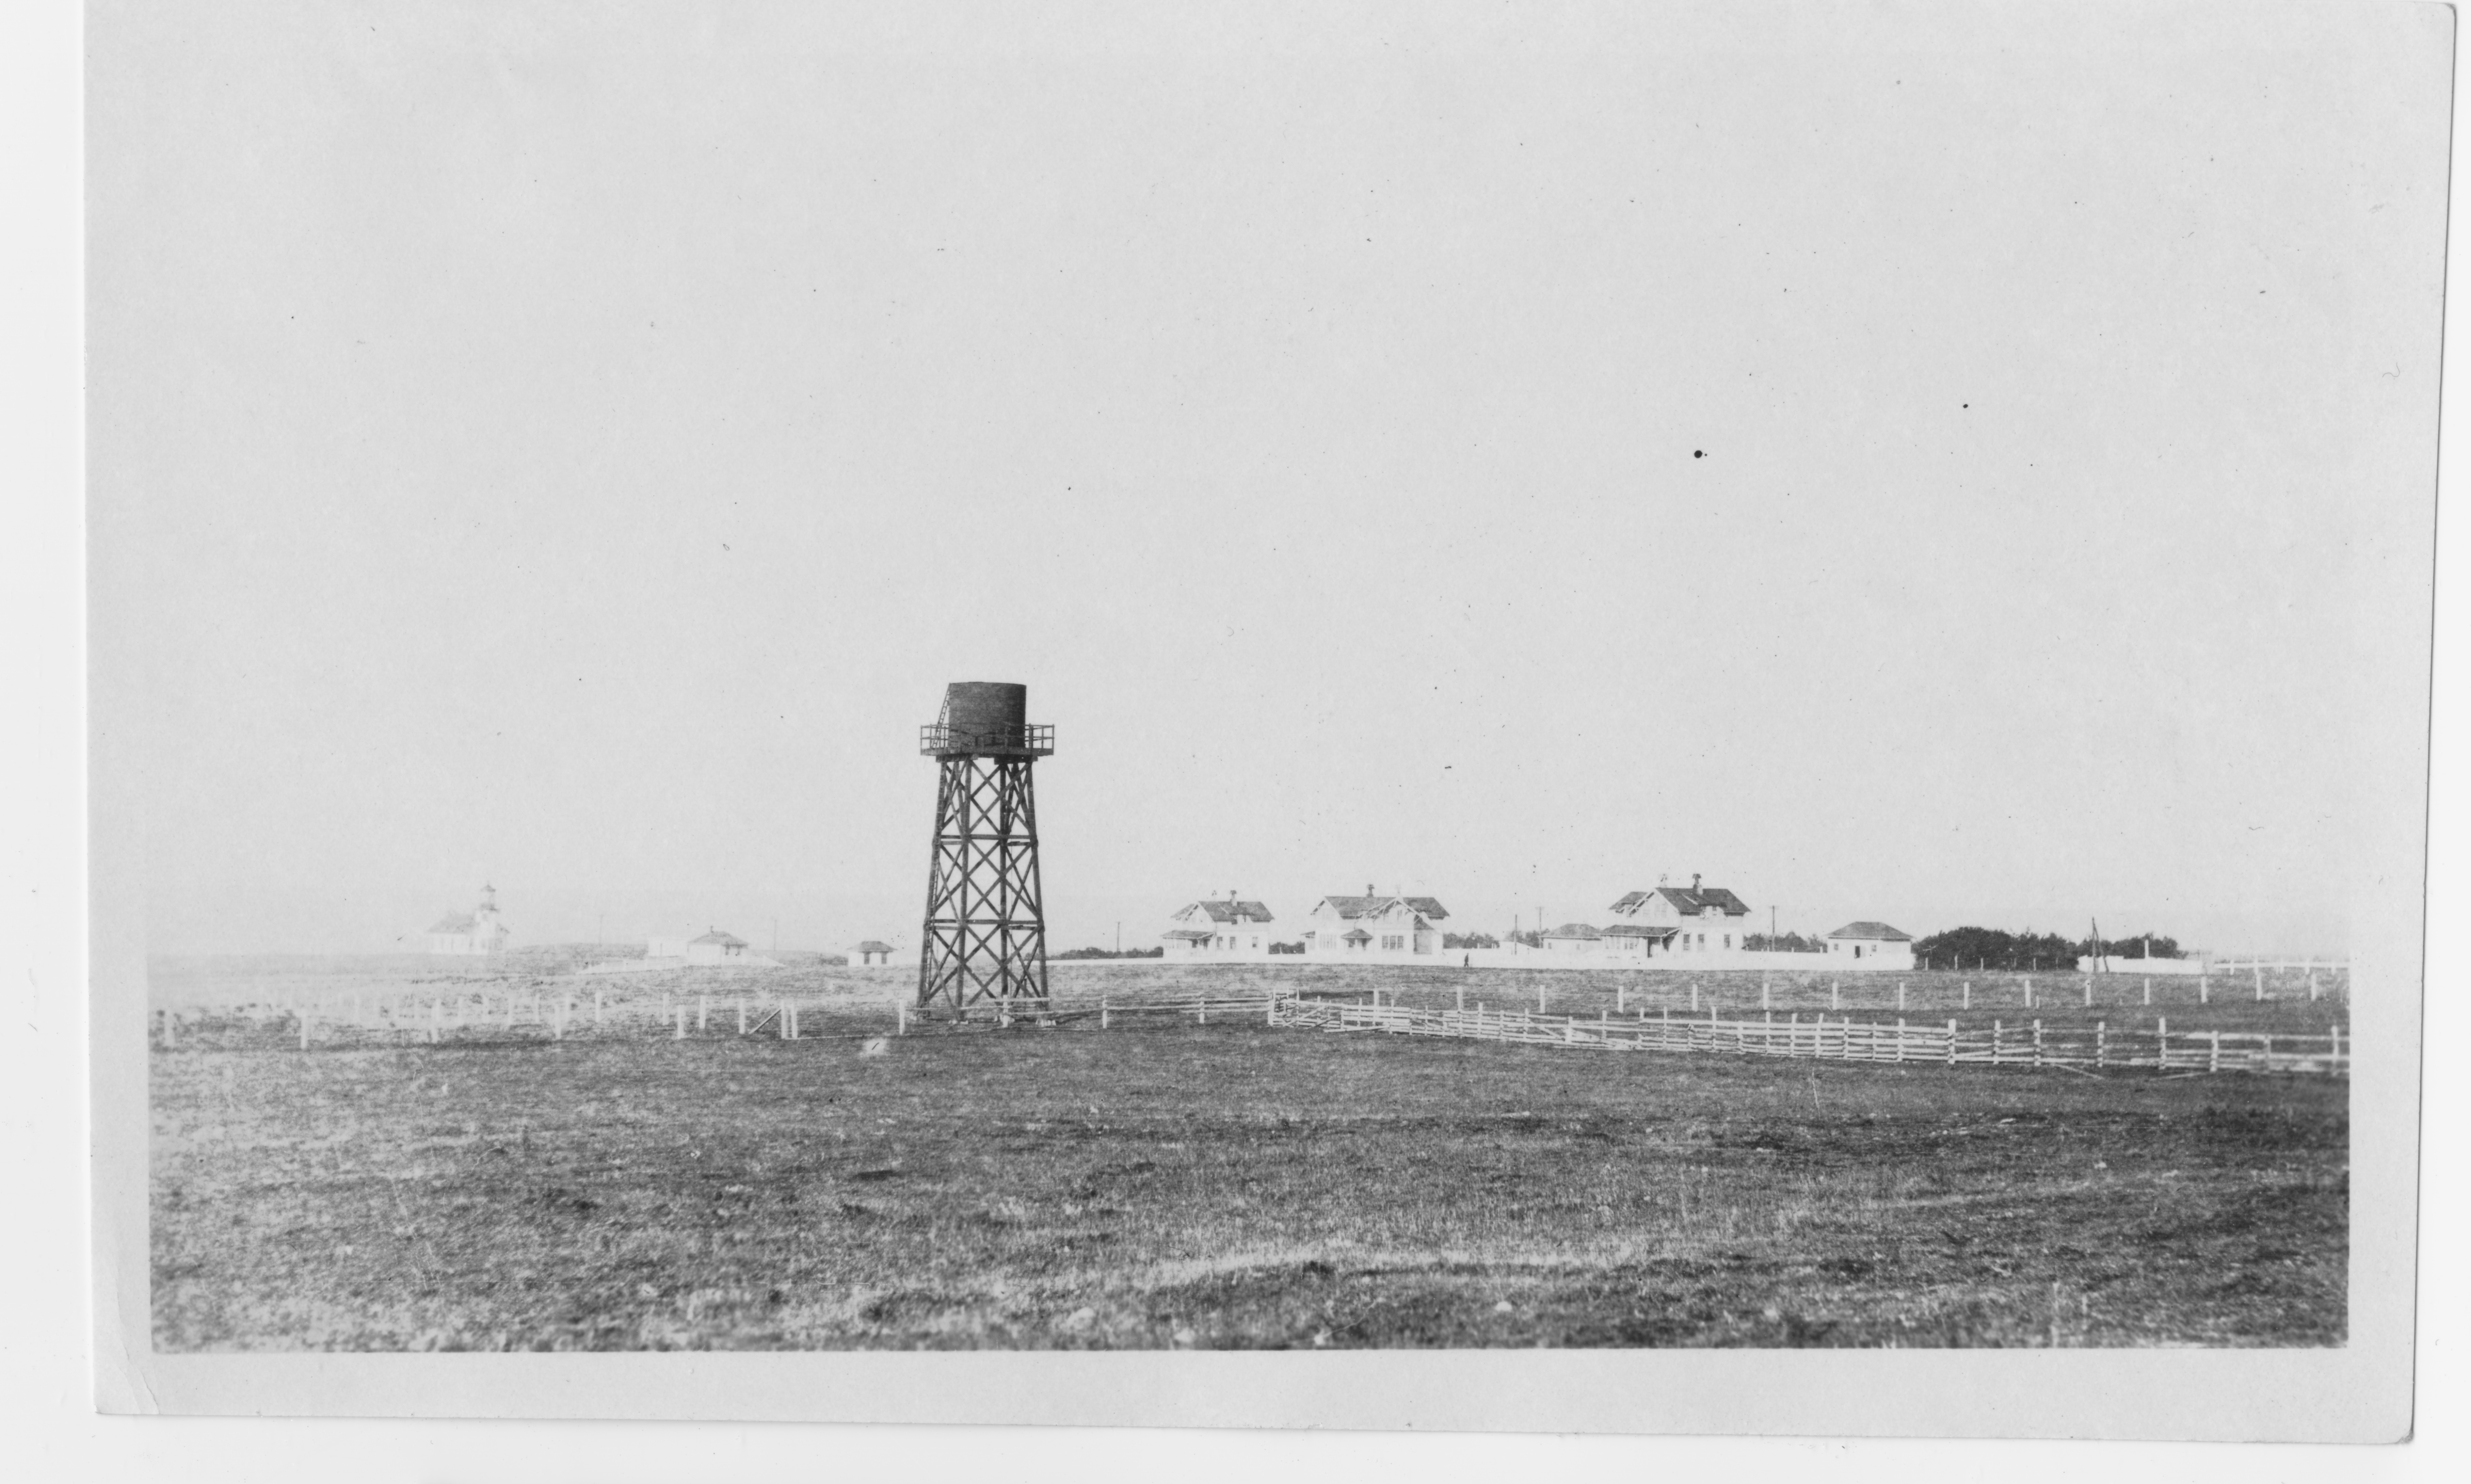 Water Tower and Light Station